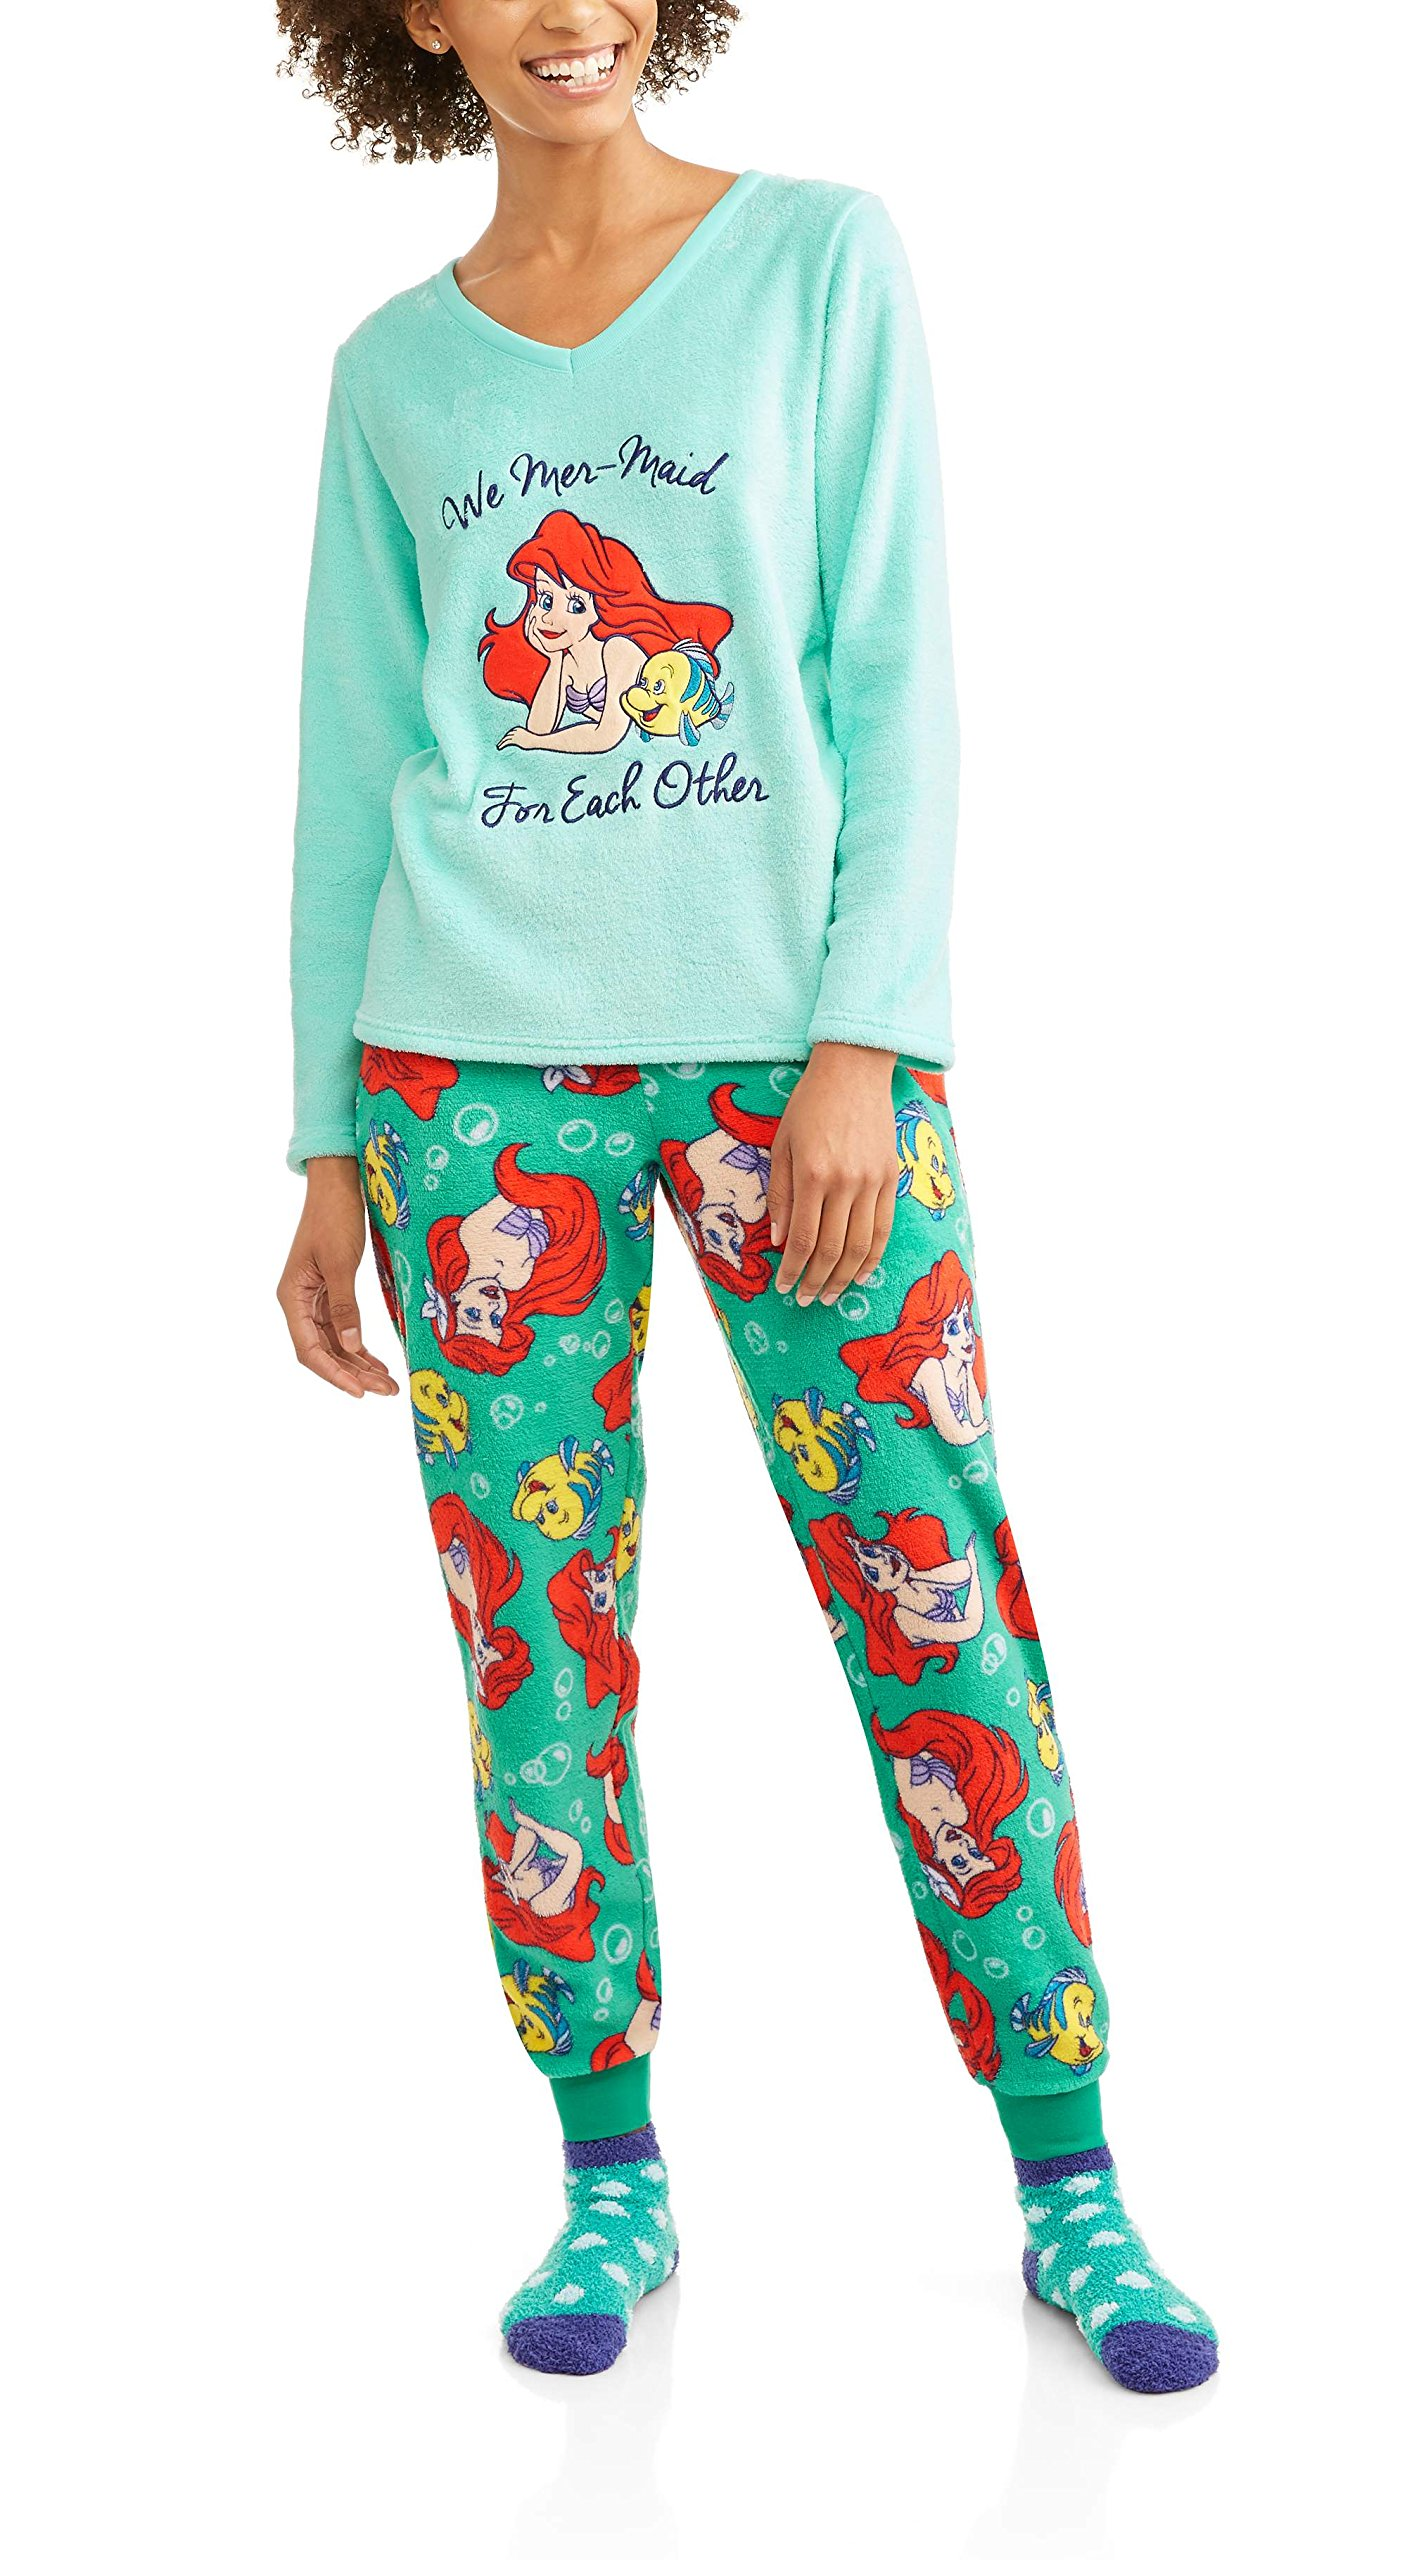 Disney Women's License Pajama Plush Fleece Sleep Top and Pant 3 Piece Giftable Sleepwear Set (The Little Mermaid, Small)